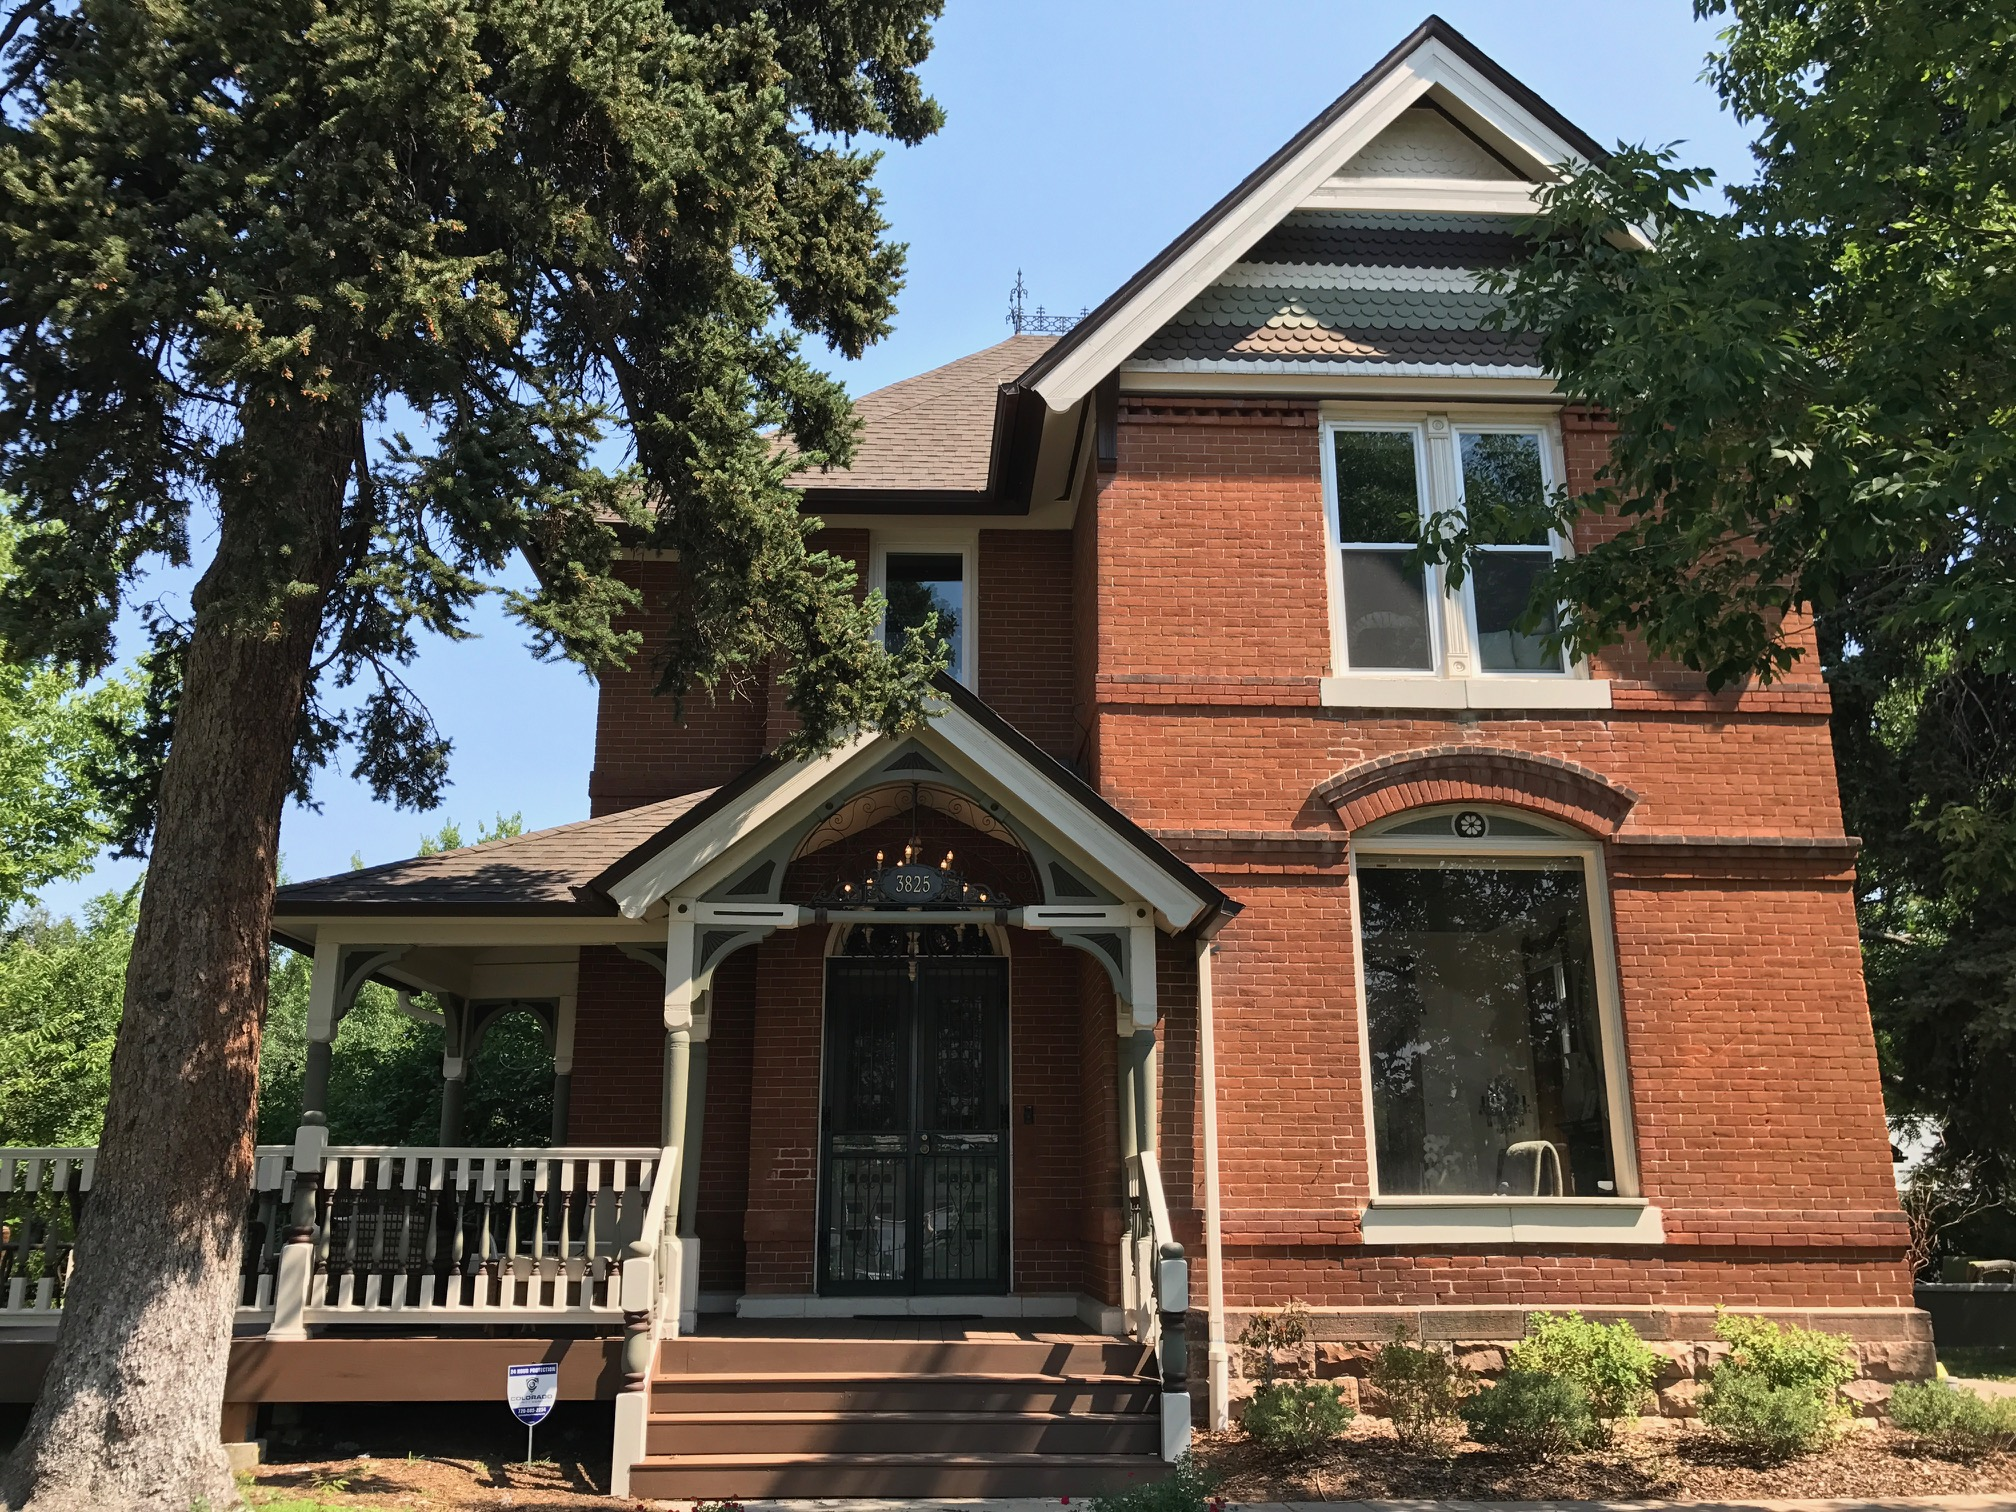 Home in Packard's Hill proposed Historic District